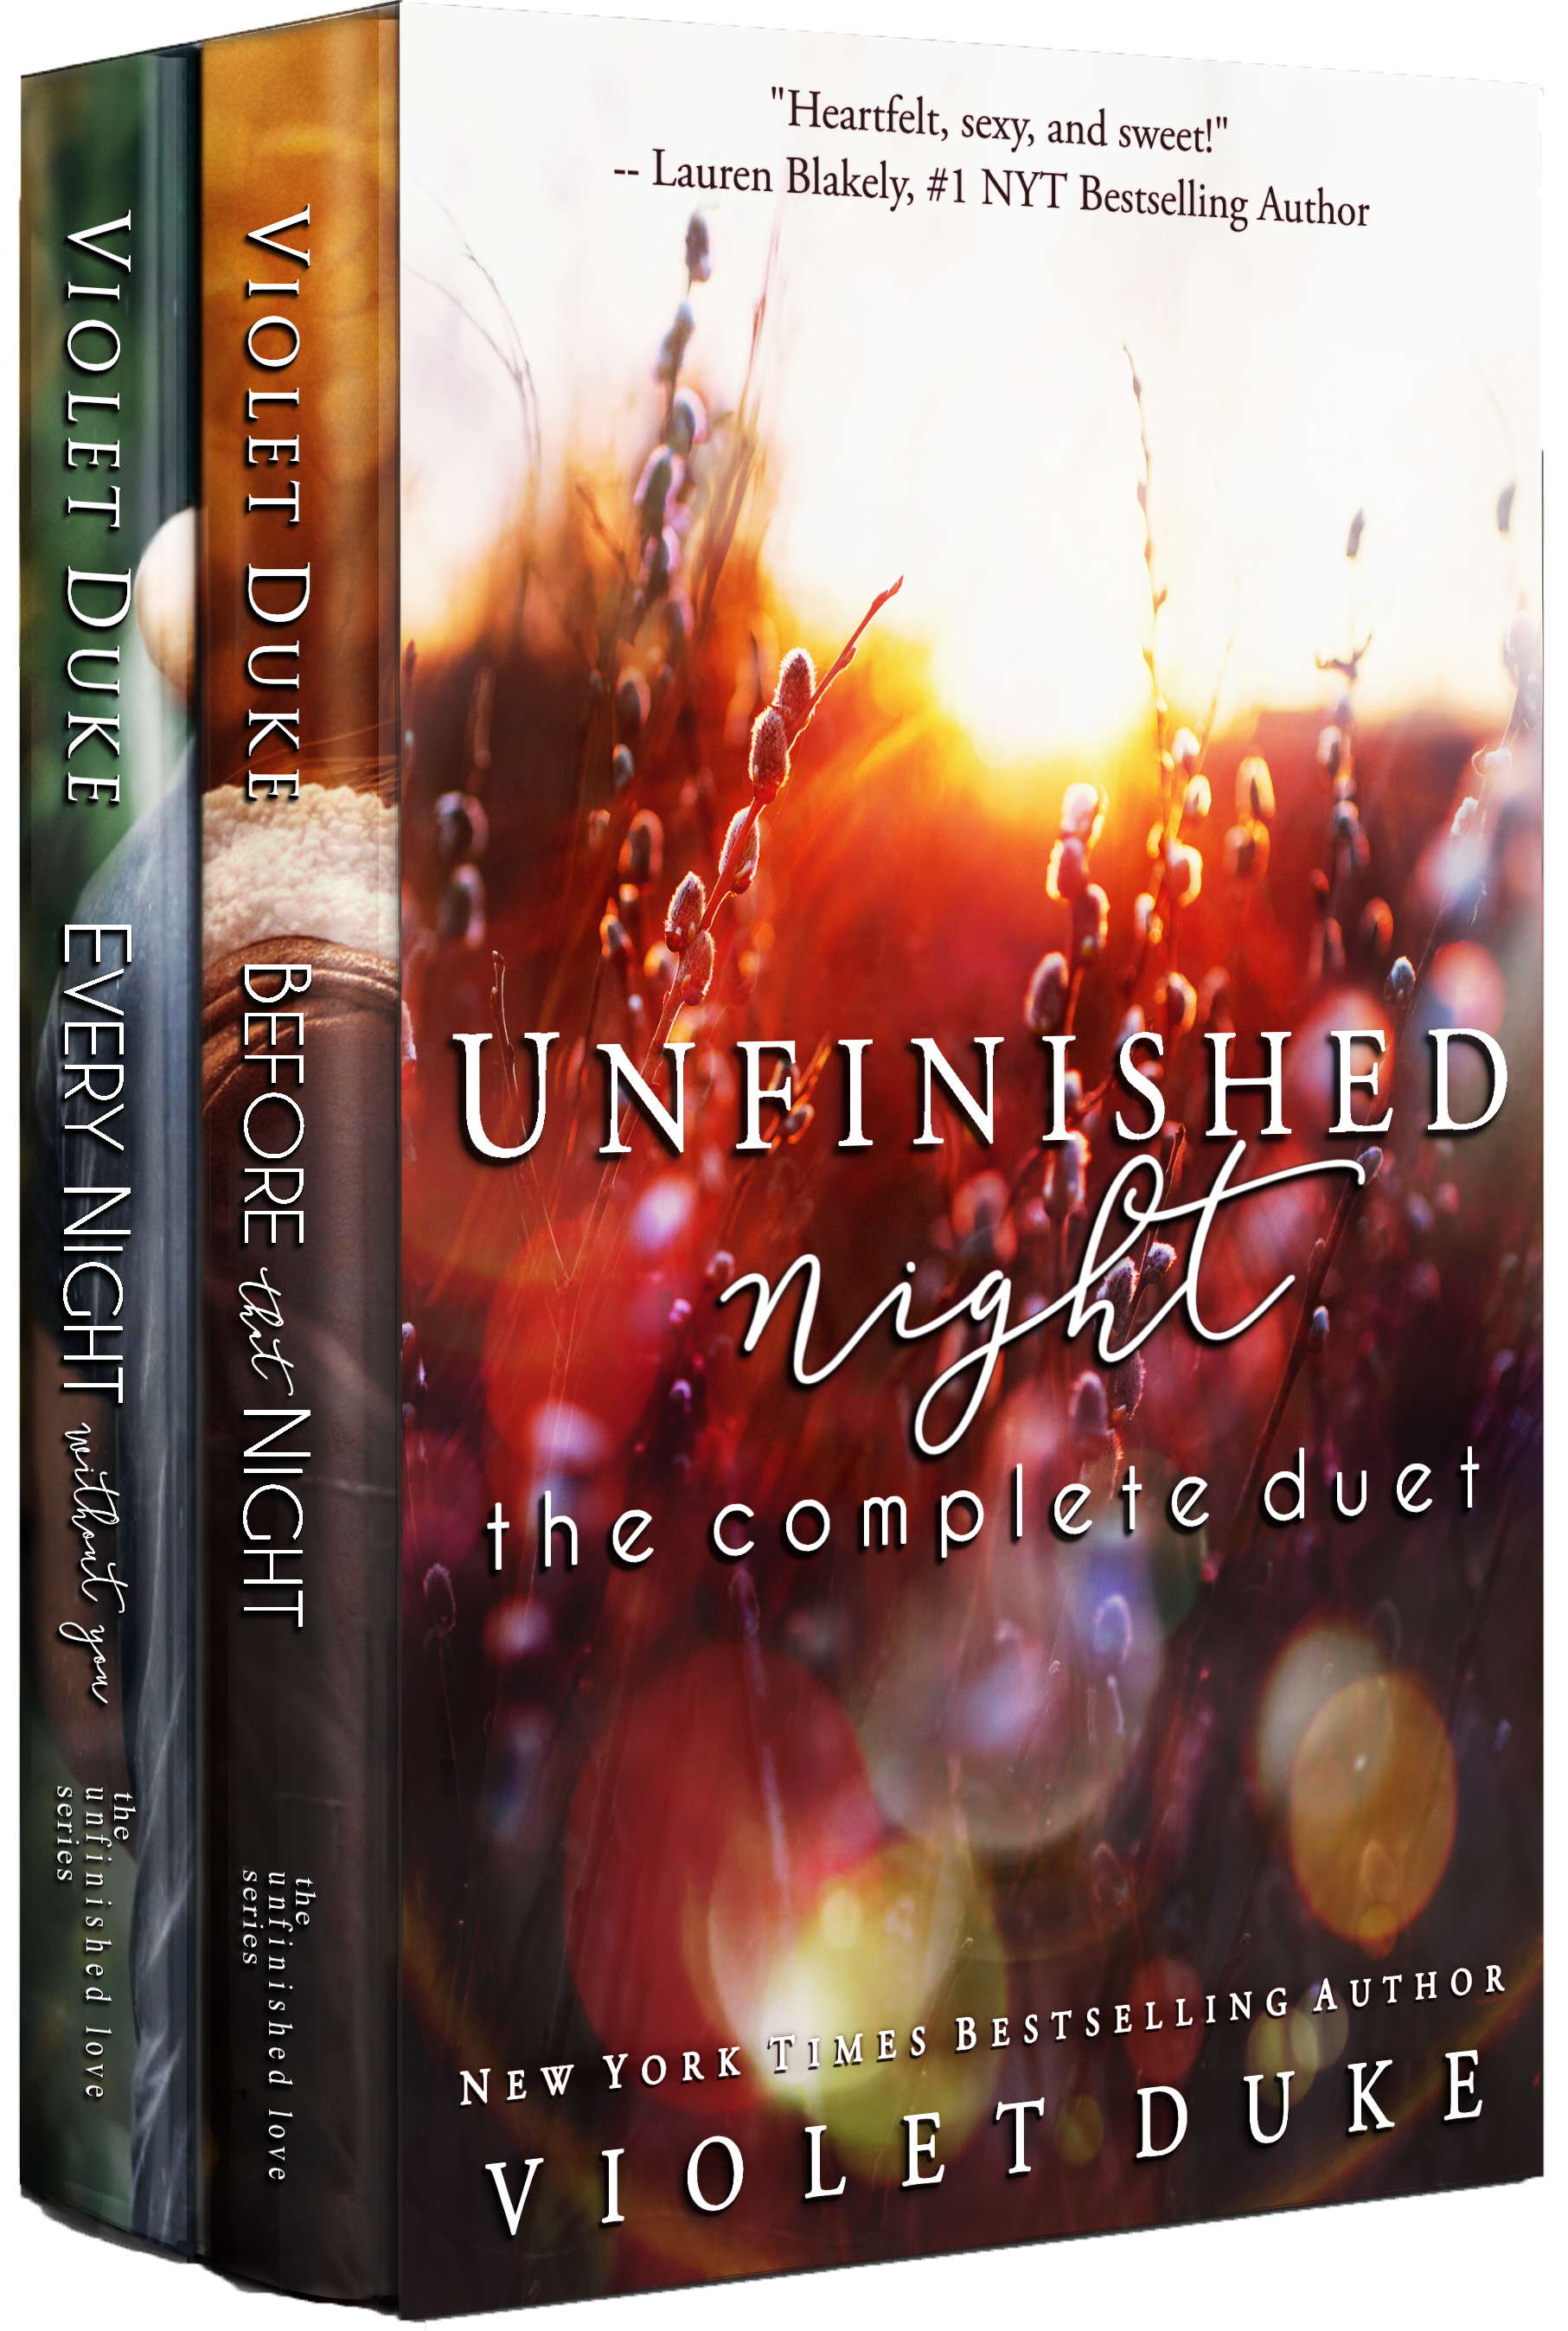 3DUnfinishedNightFinalCoverPublish2.png